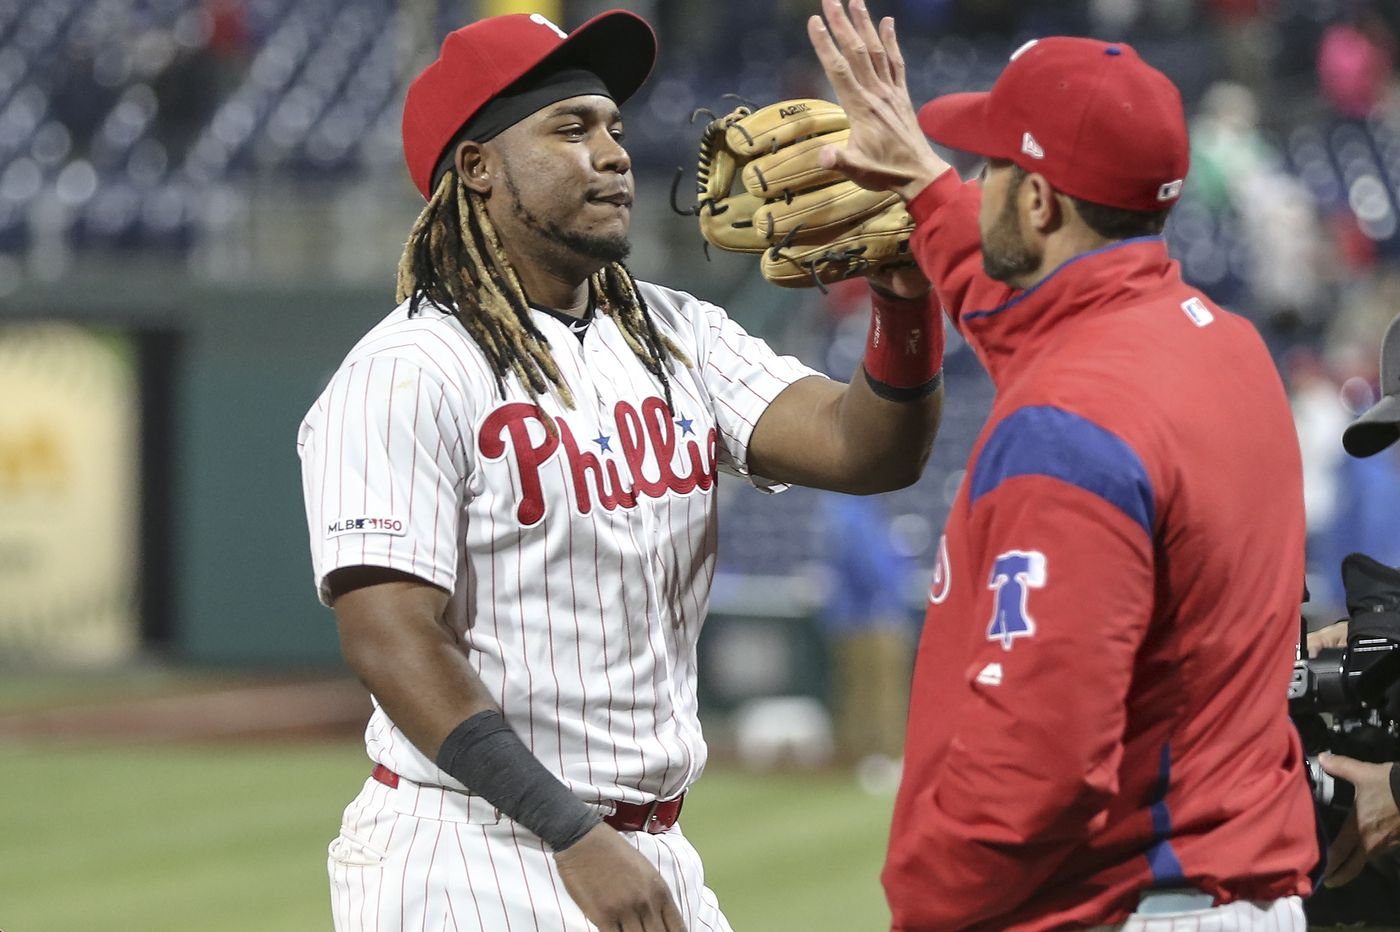 Maikel Franco's double lifts Phillies over Tigers, 7-3